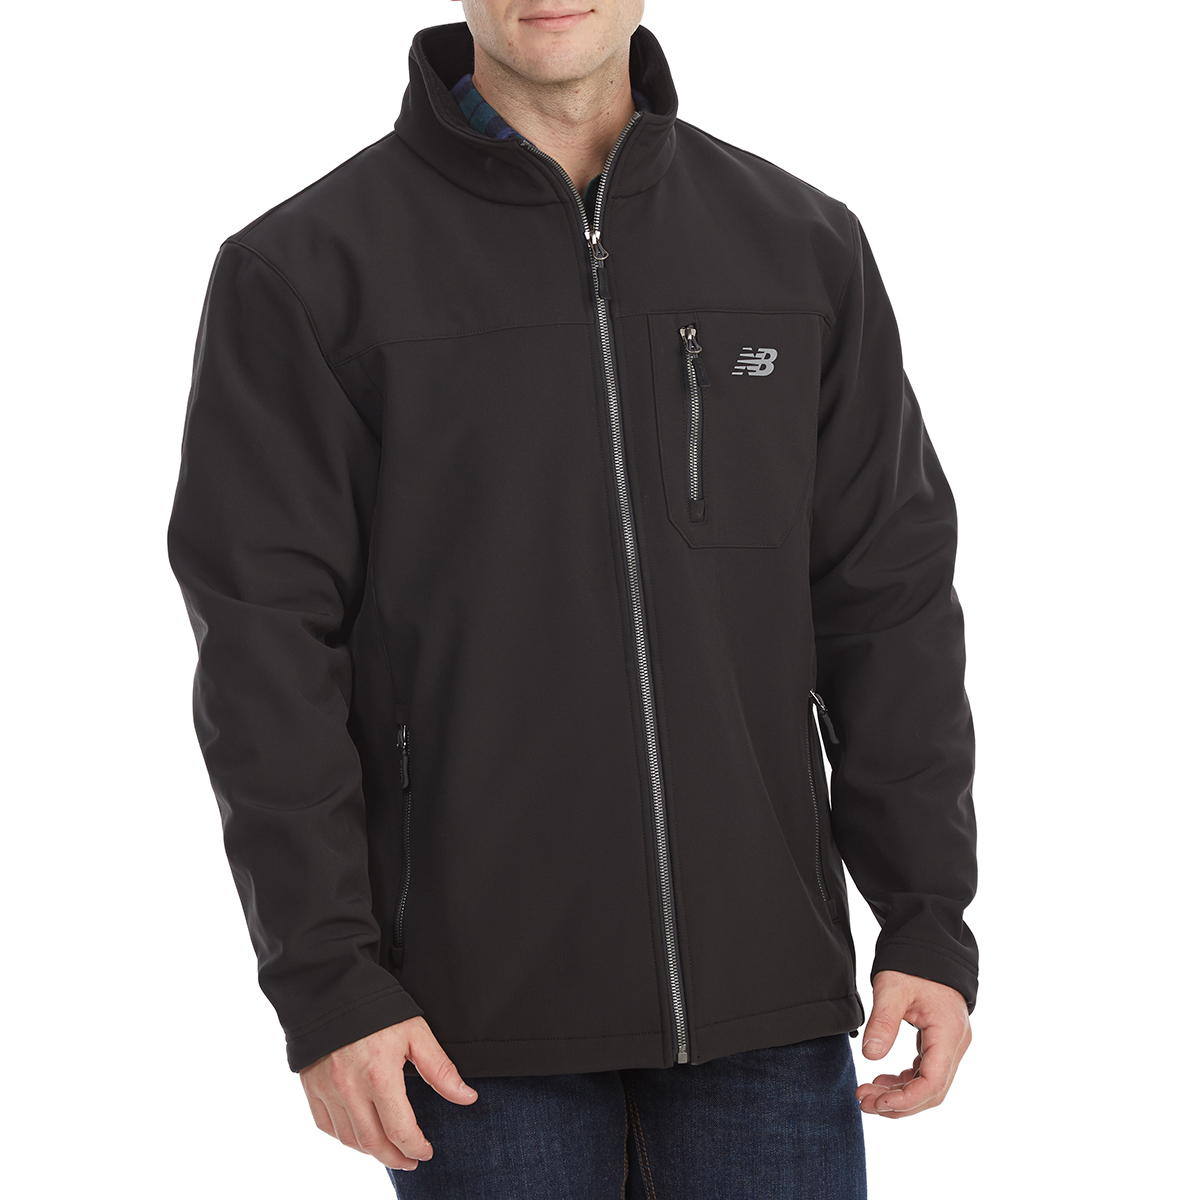 New Balance Men's Softshell Jacket With Chest Pocket - Black, XXL